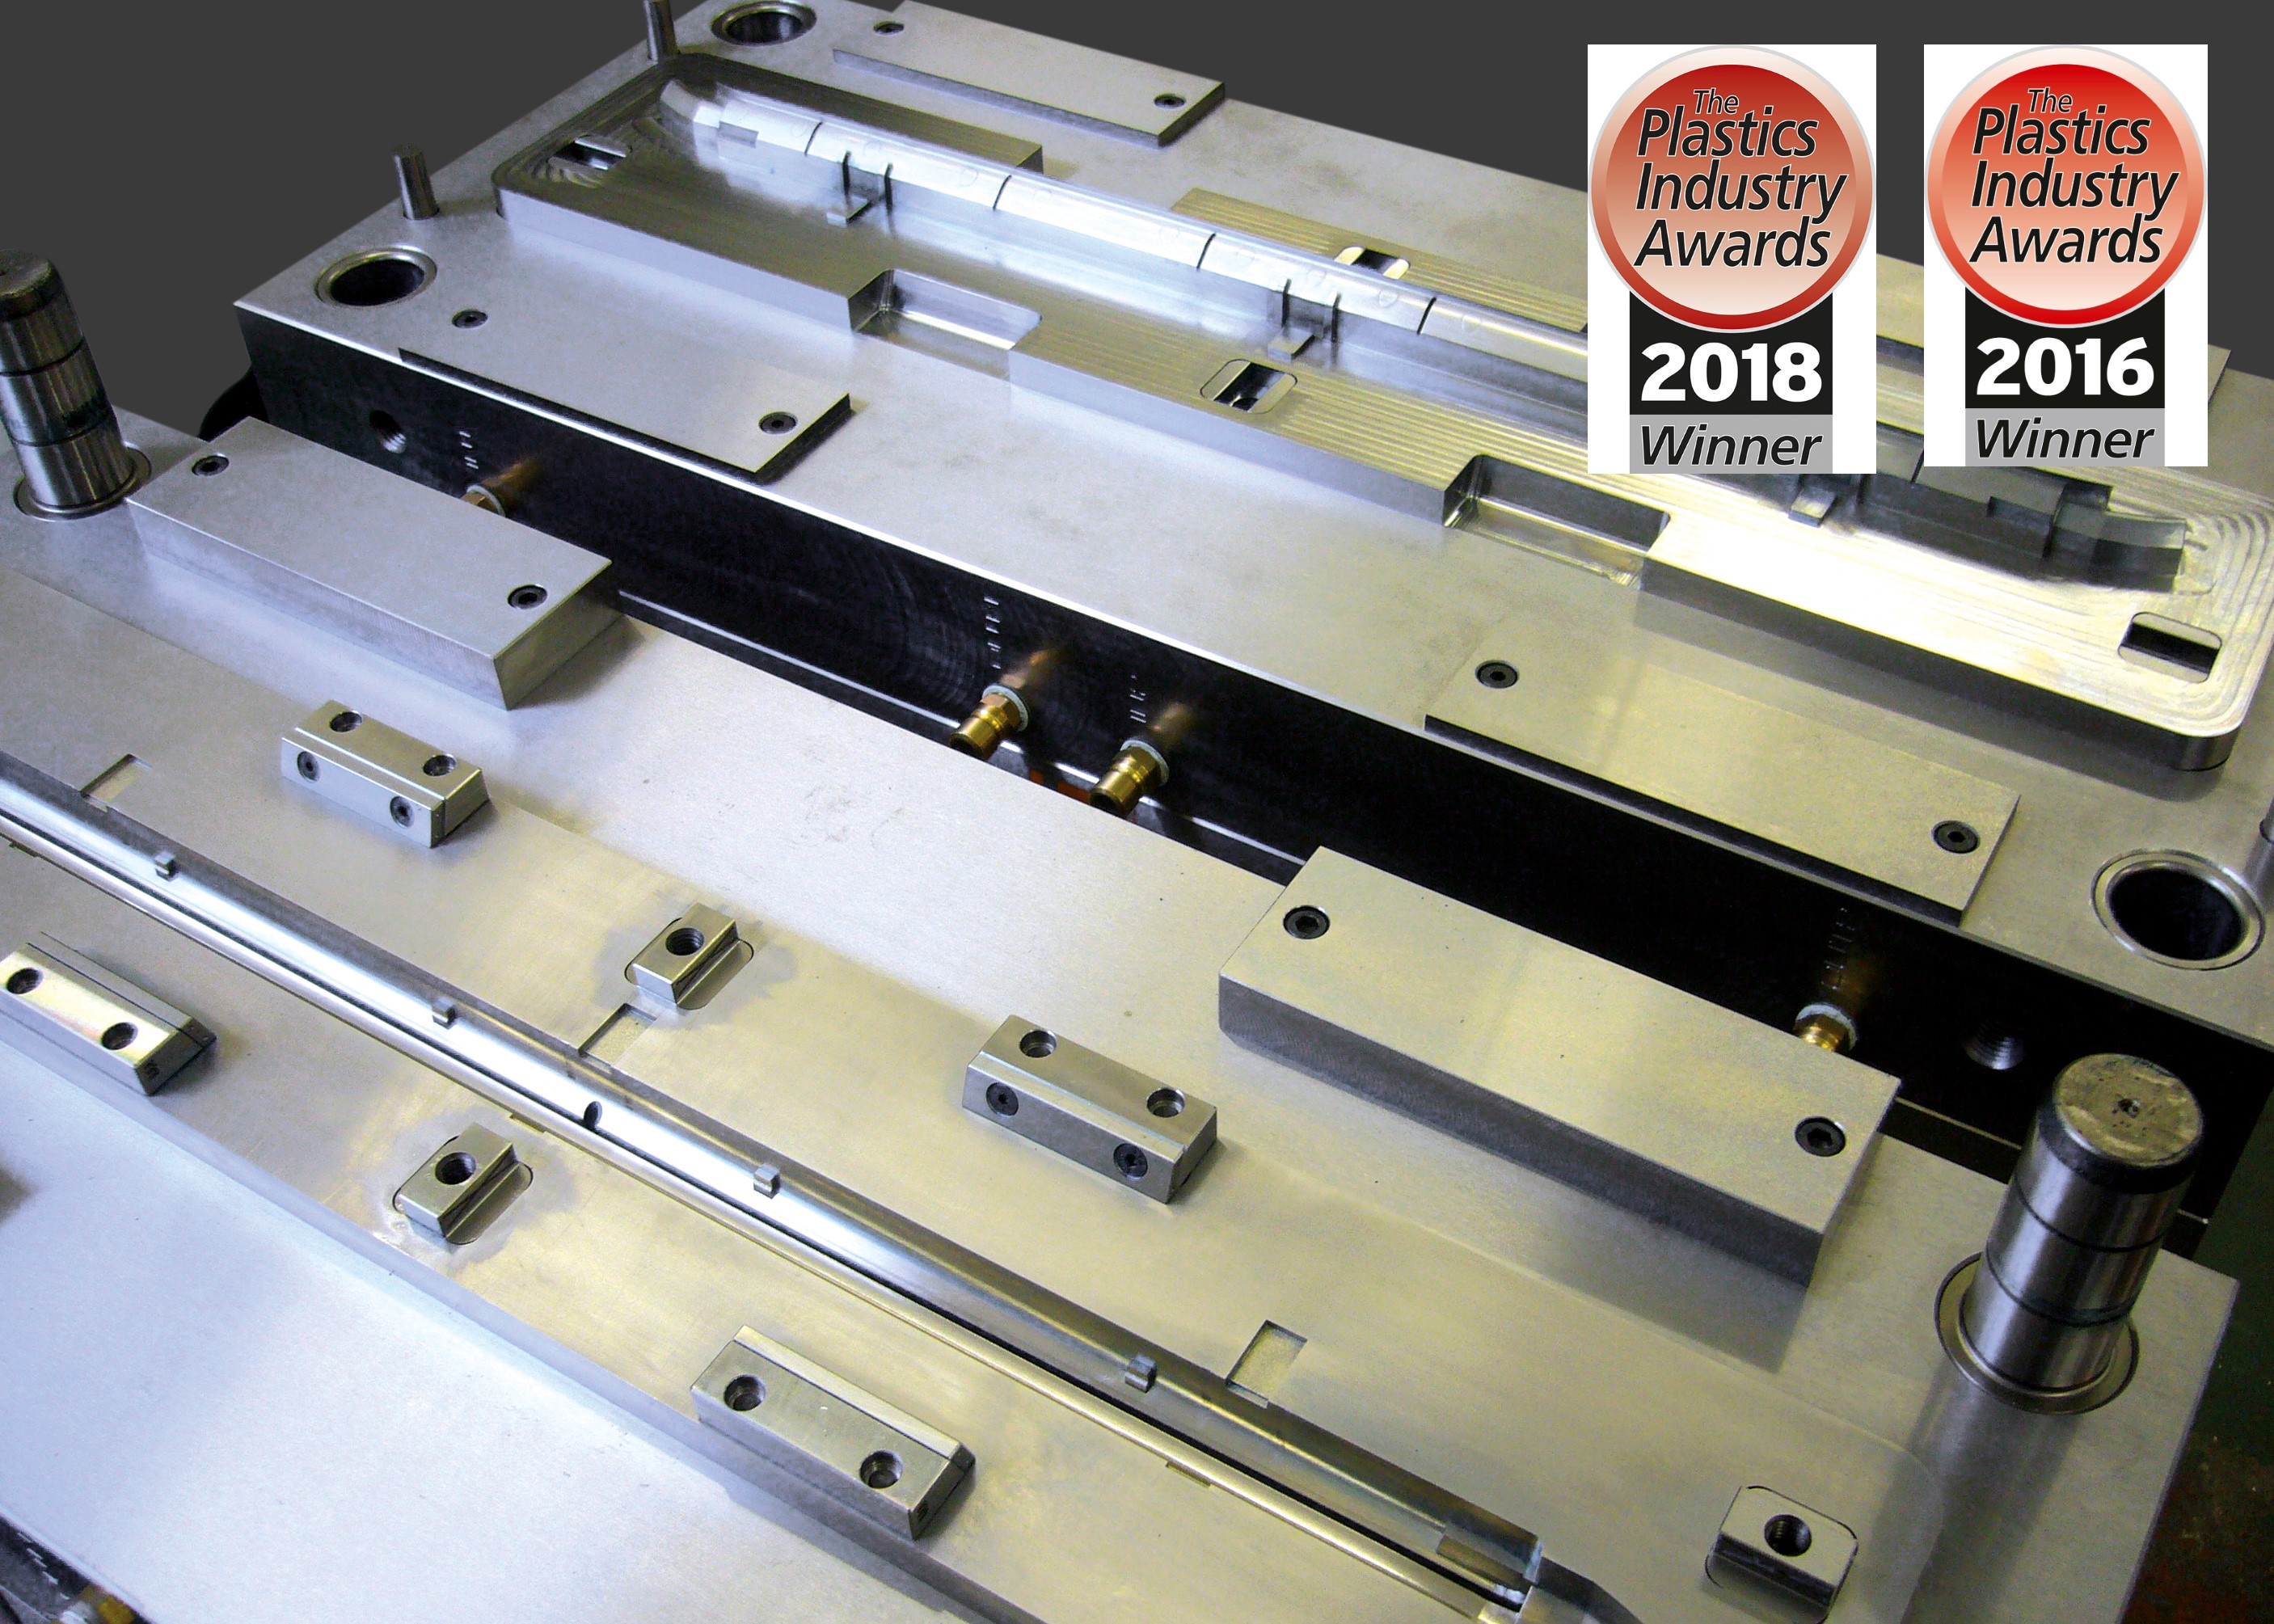 "<p>""Faulkner Moulds are a rare breed in this field. Excellent quality, on time, every time, no exceptions. I have nothing but praise for this professional toolmaker.""</p> <p>Sales and Marketing Director, manufacturer in leisure and automotive industry.</p>"